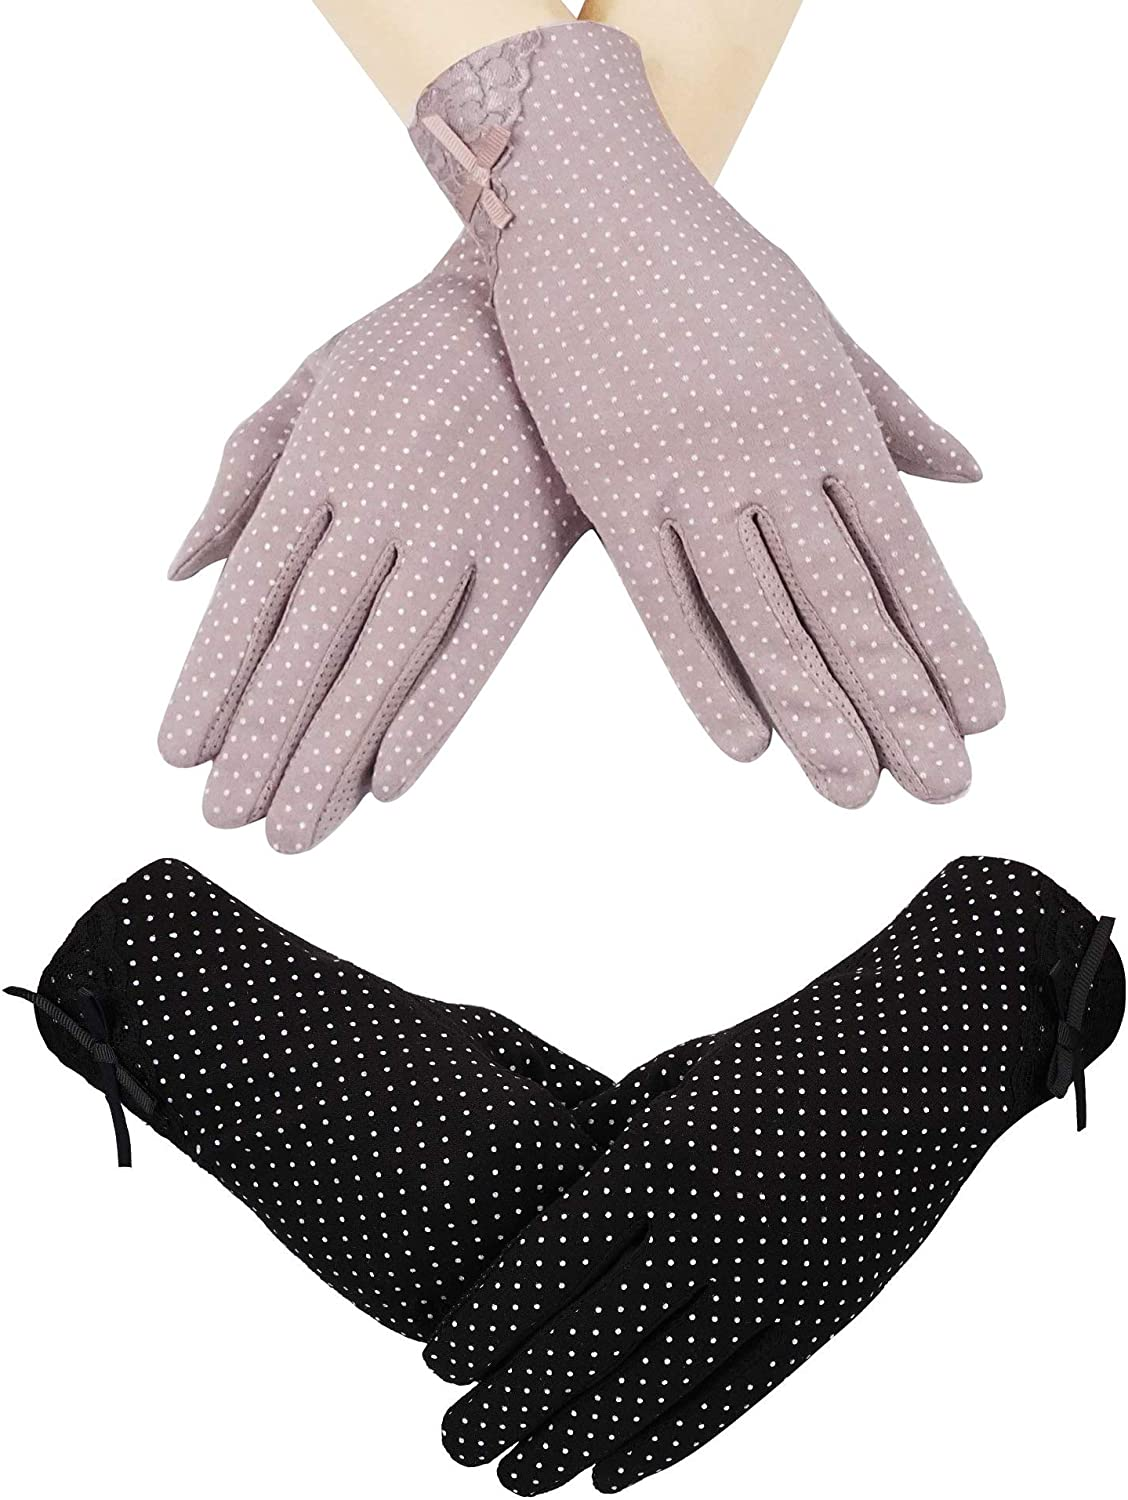 2 Pairs Women Sun UV Protection Gloves Wrist Length Sunblock Gloves Touchscreen Gloves for Summer Driving Riding